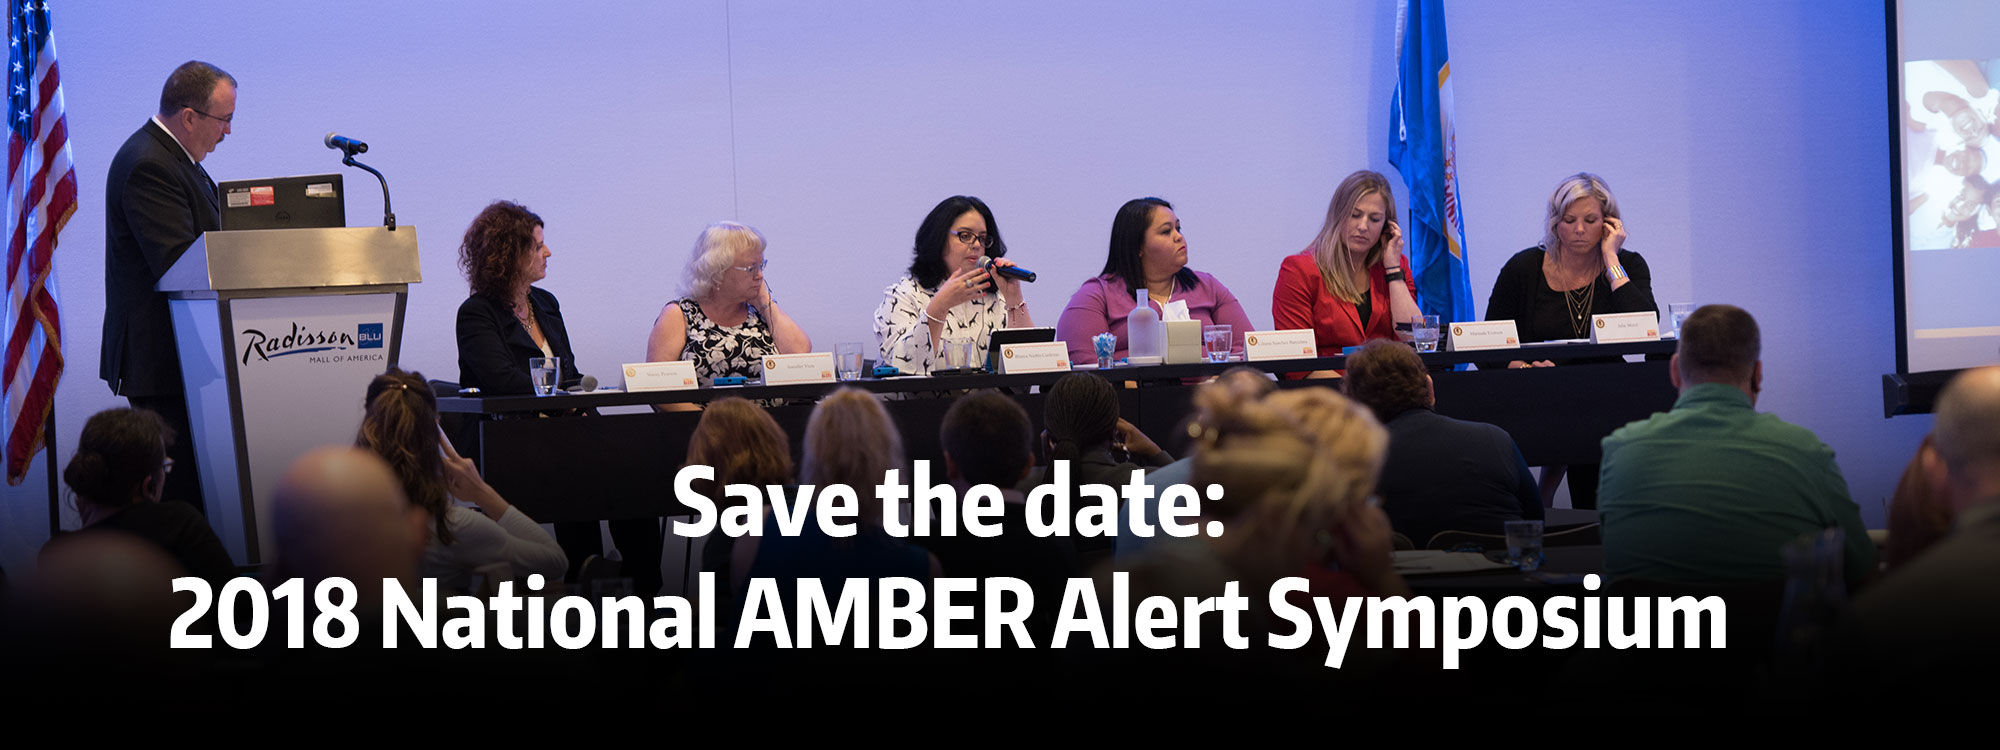 2018 AMBER Alert Symposium Save the Date